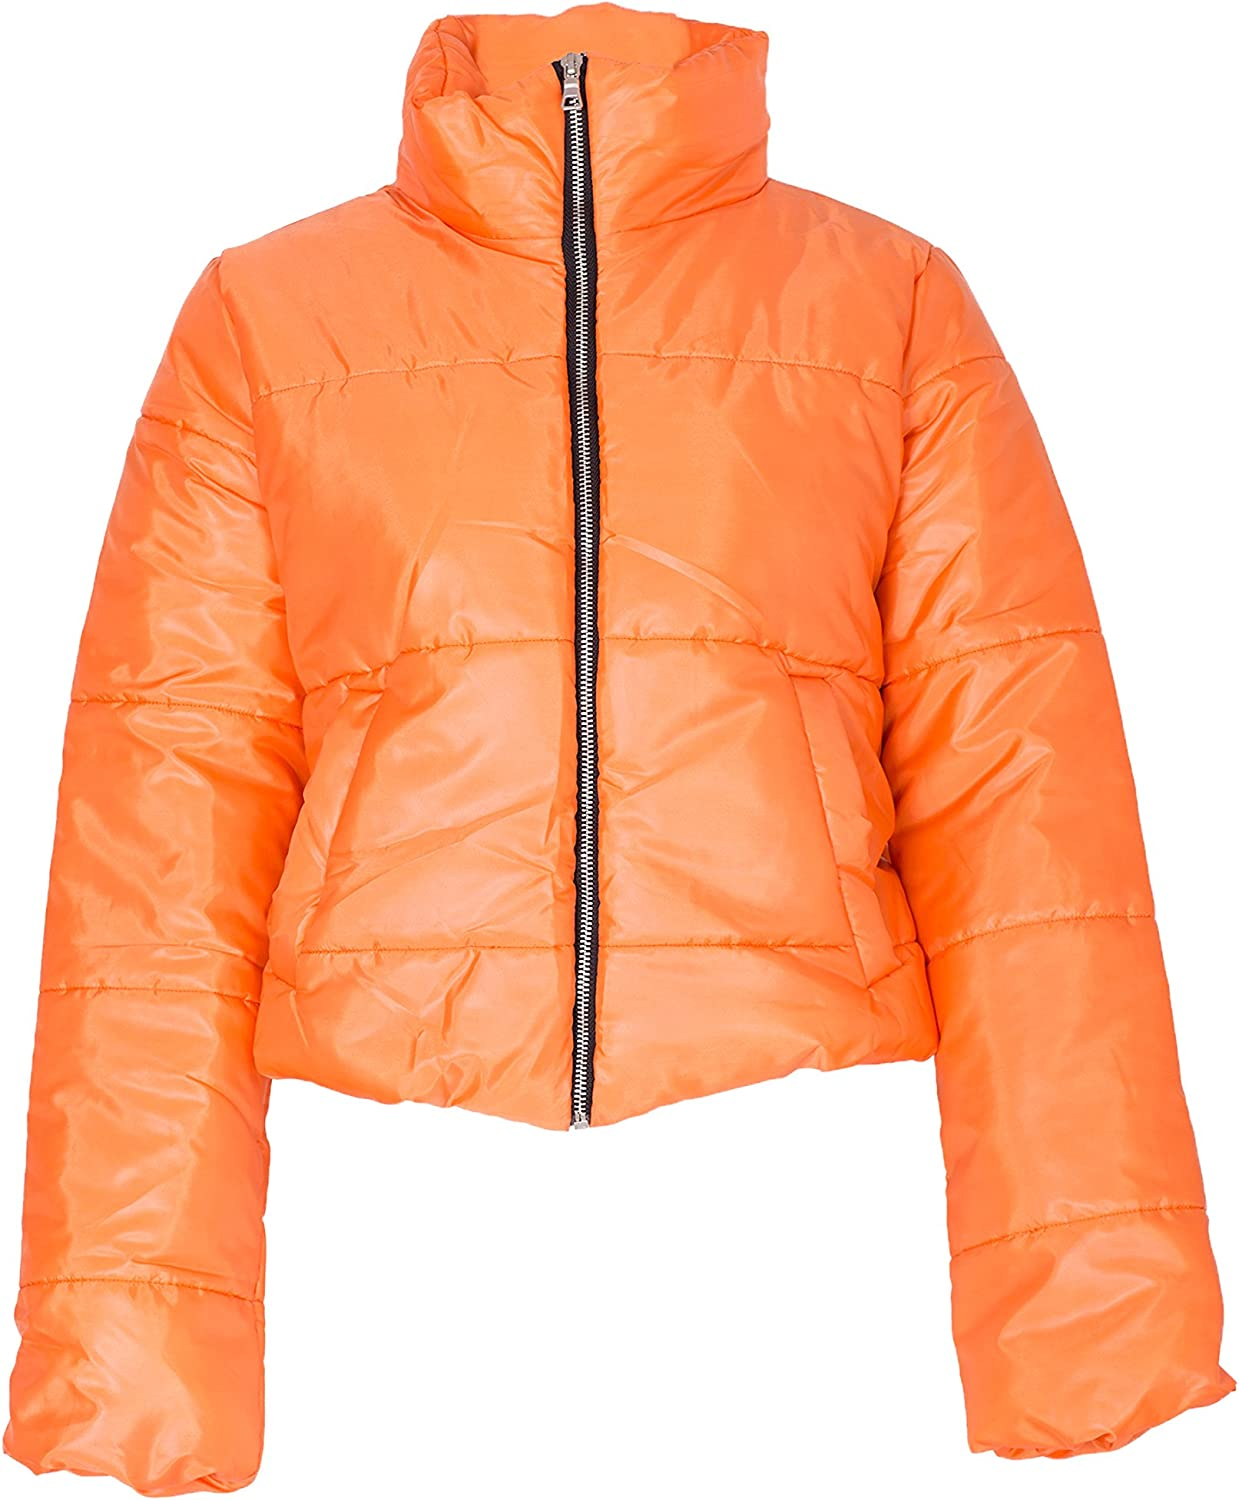 NOROZE Womens Crop Jacket Padded Puffer Coat Cropped